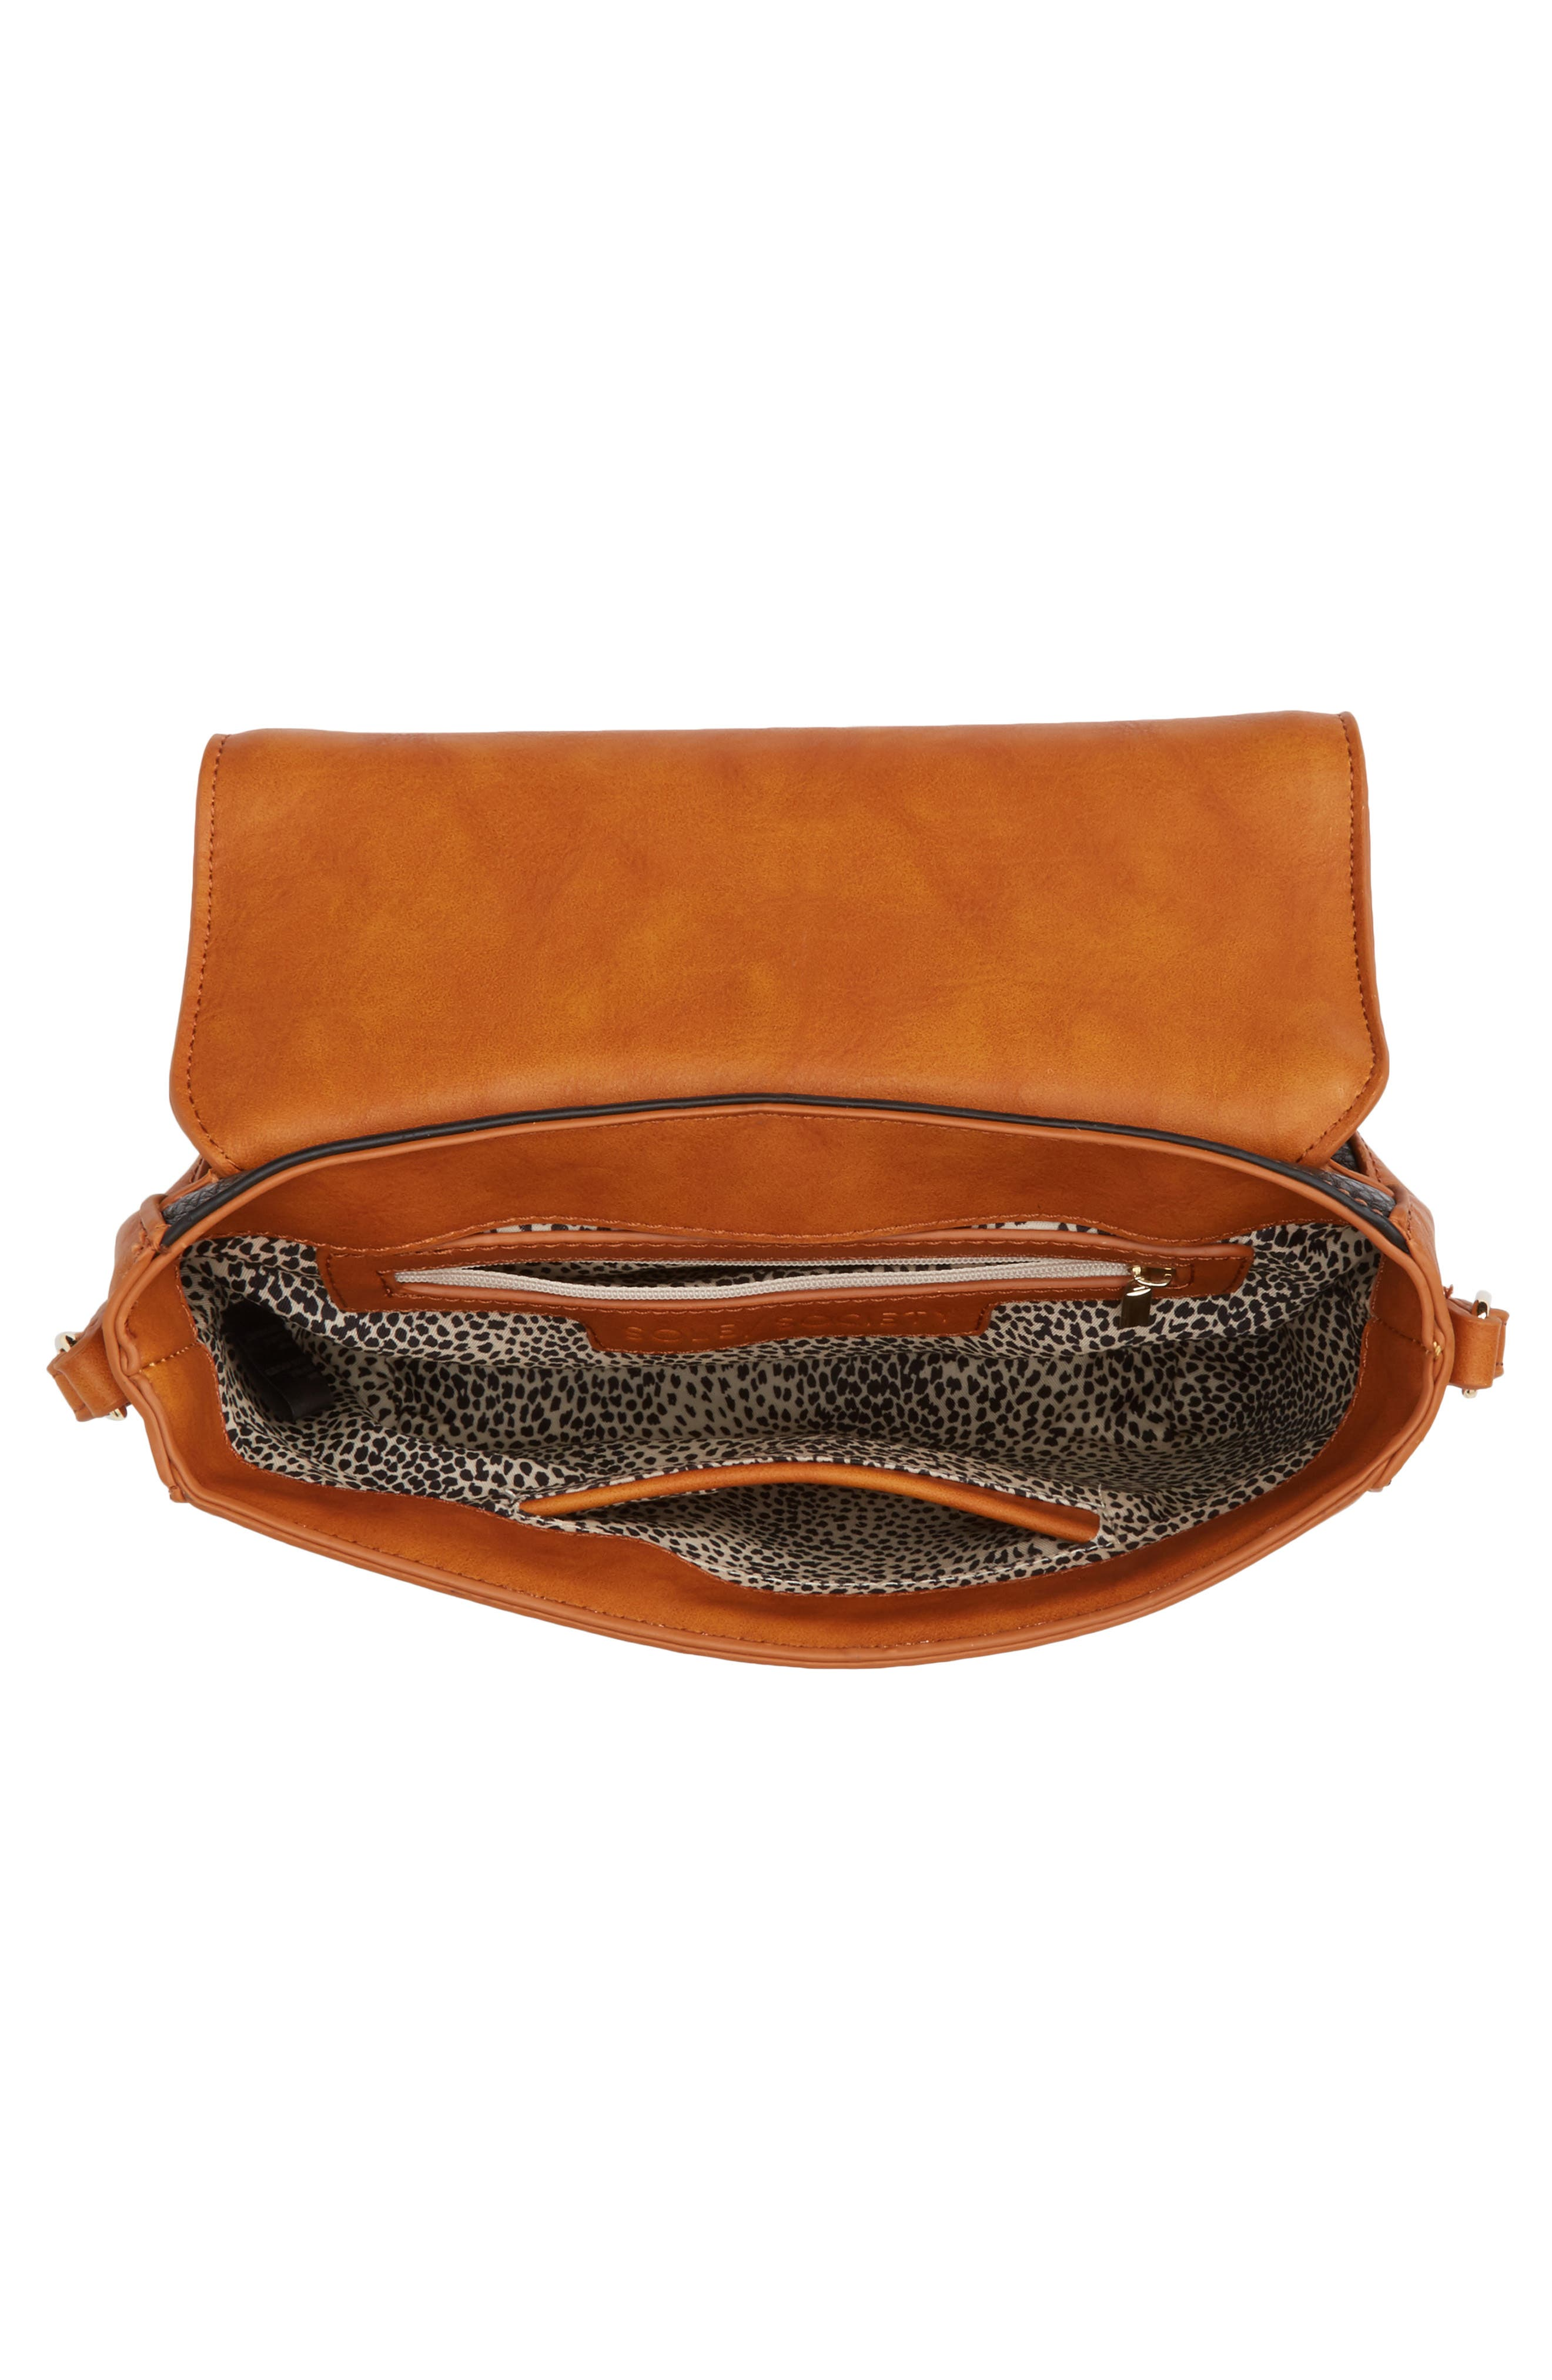 Finnigan Faux Leather Crossbody Bag,                             Alternate thumbnail 4, color,                             001